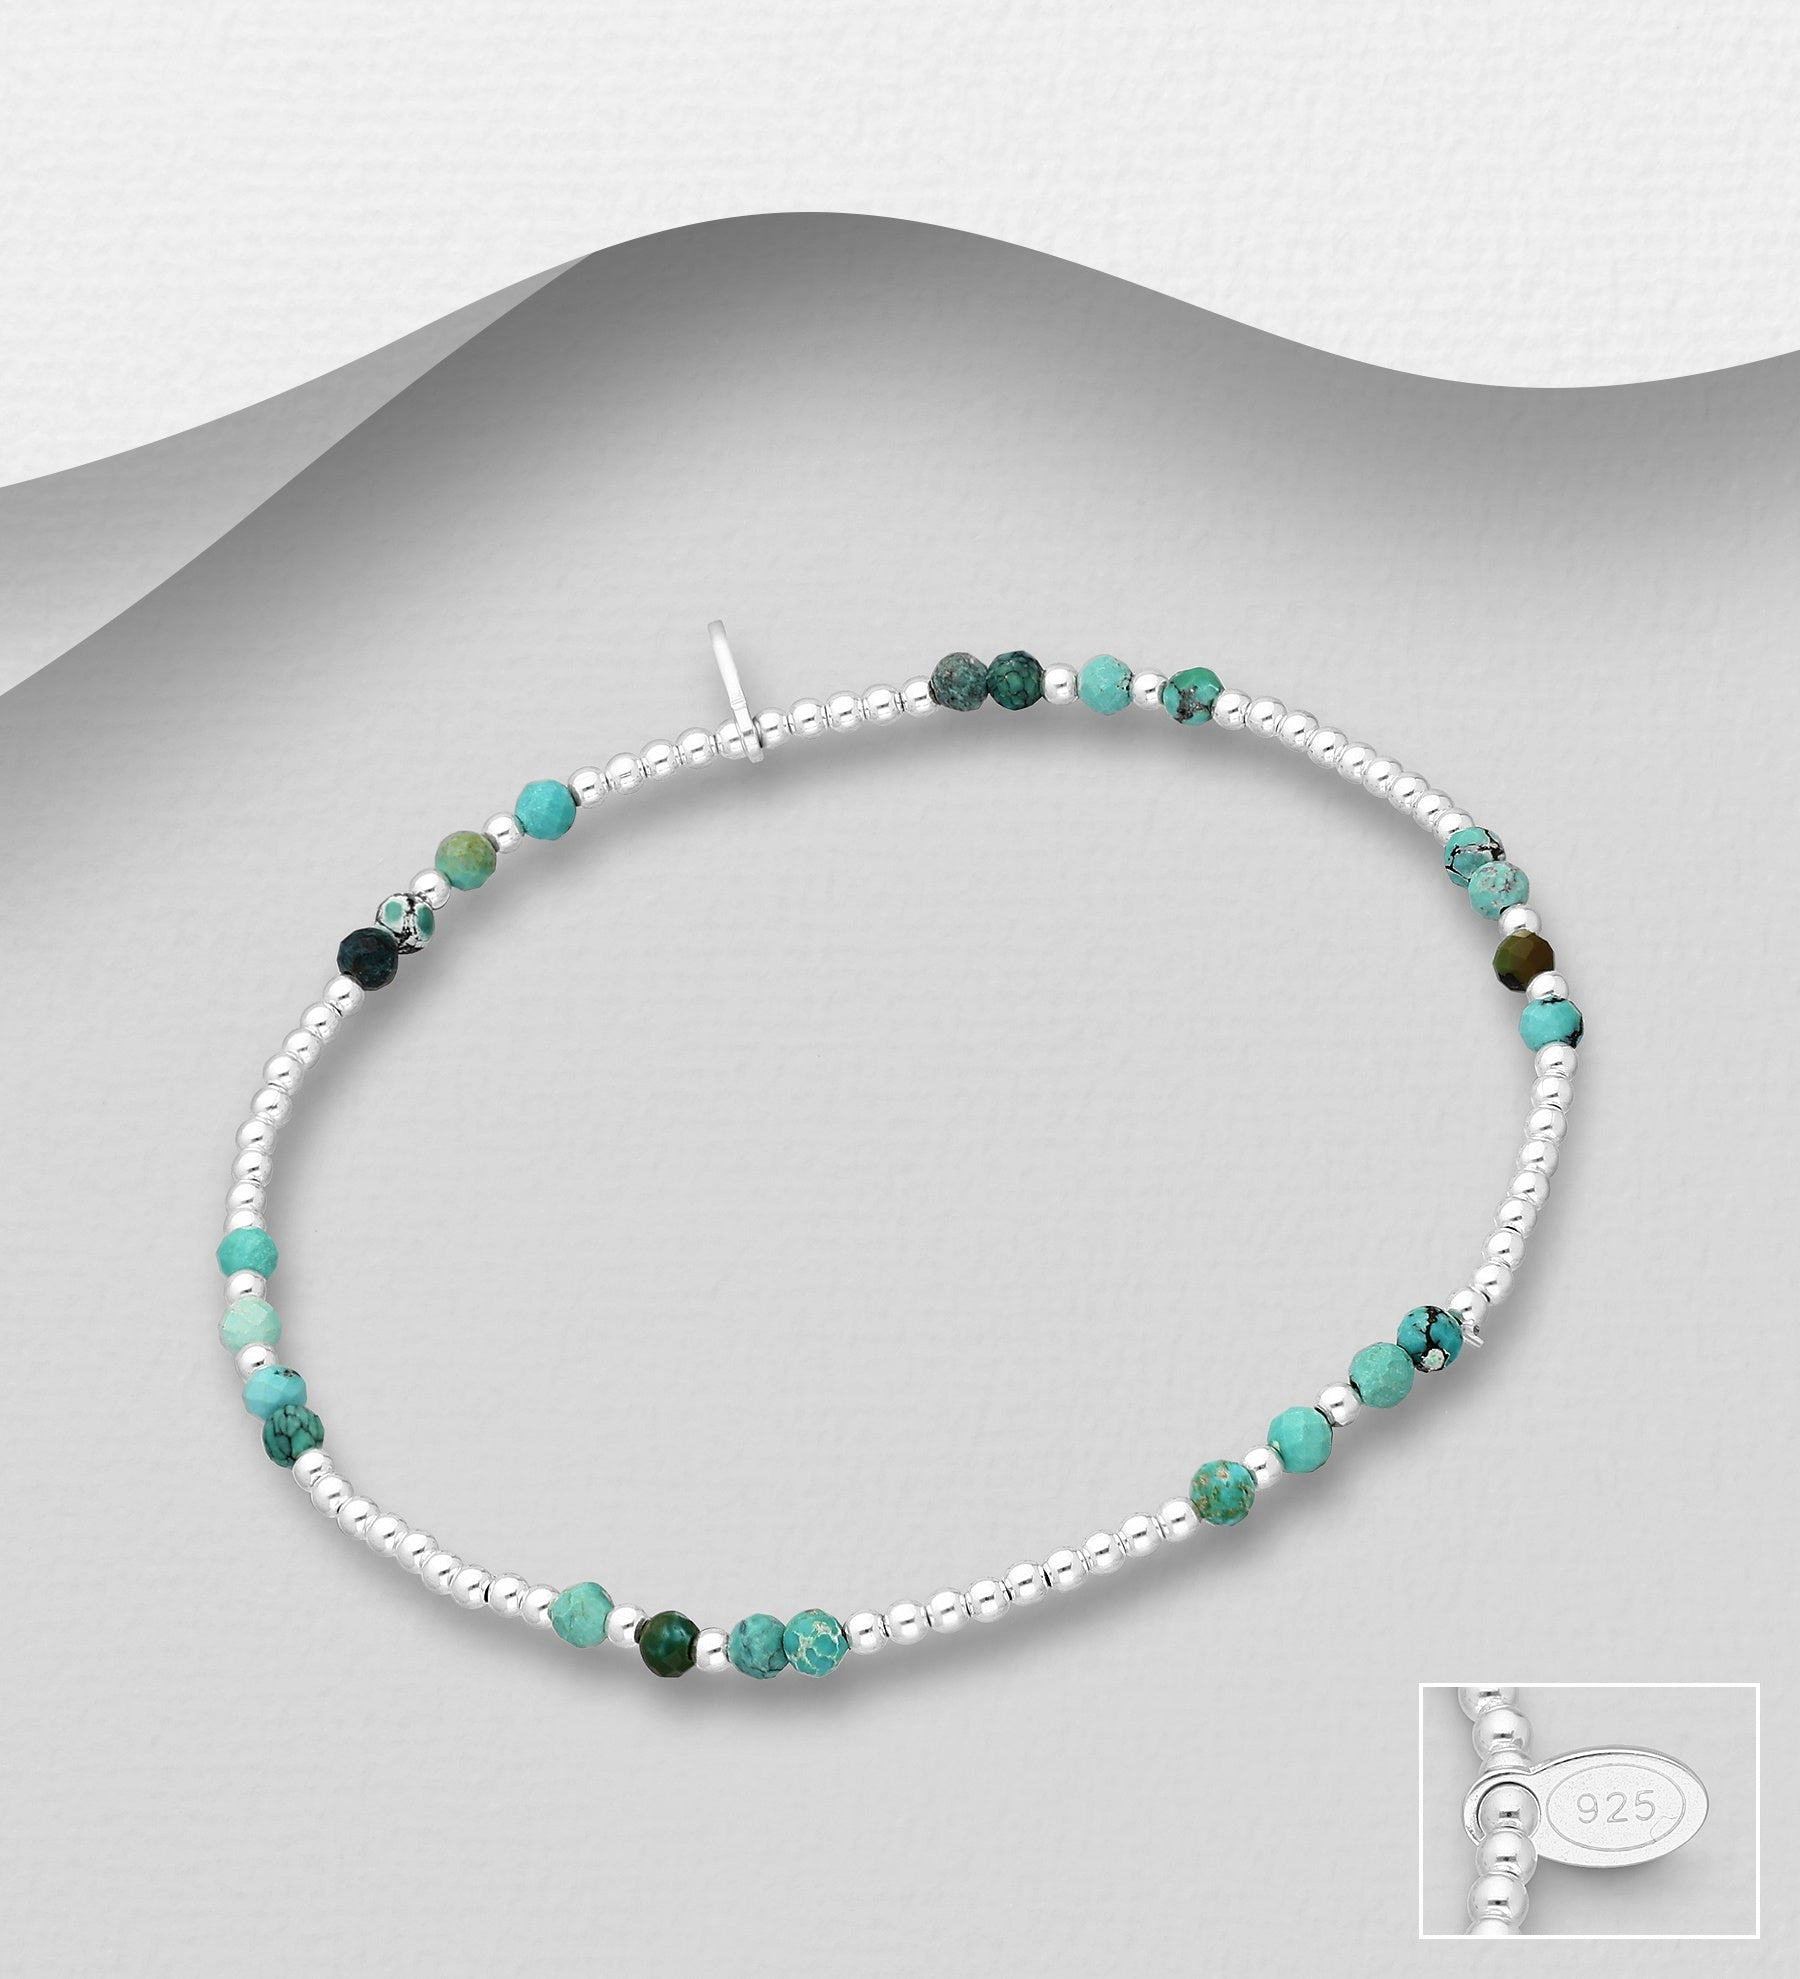 Turquoise Balanced Stretch Bracelet